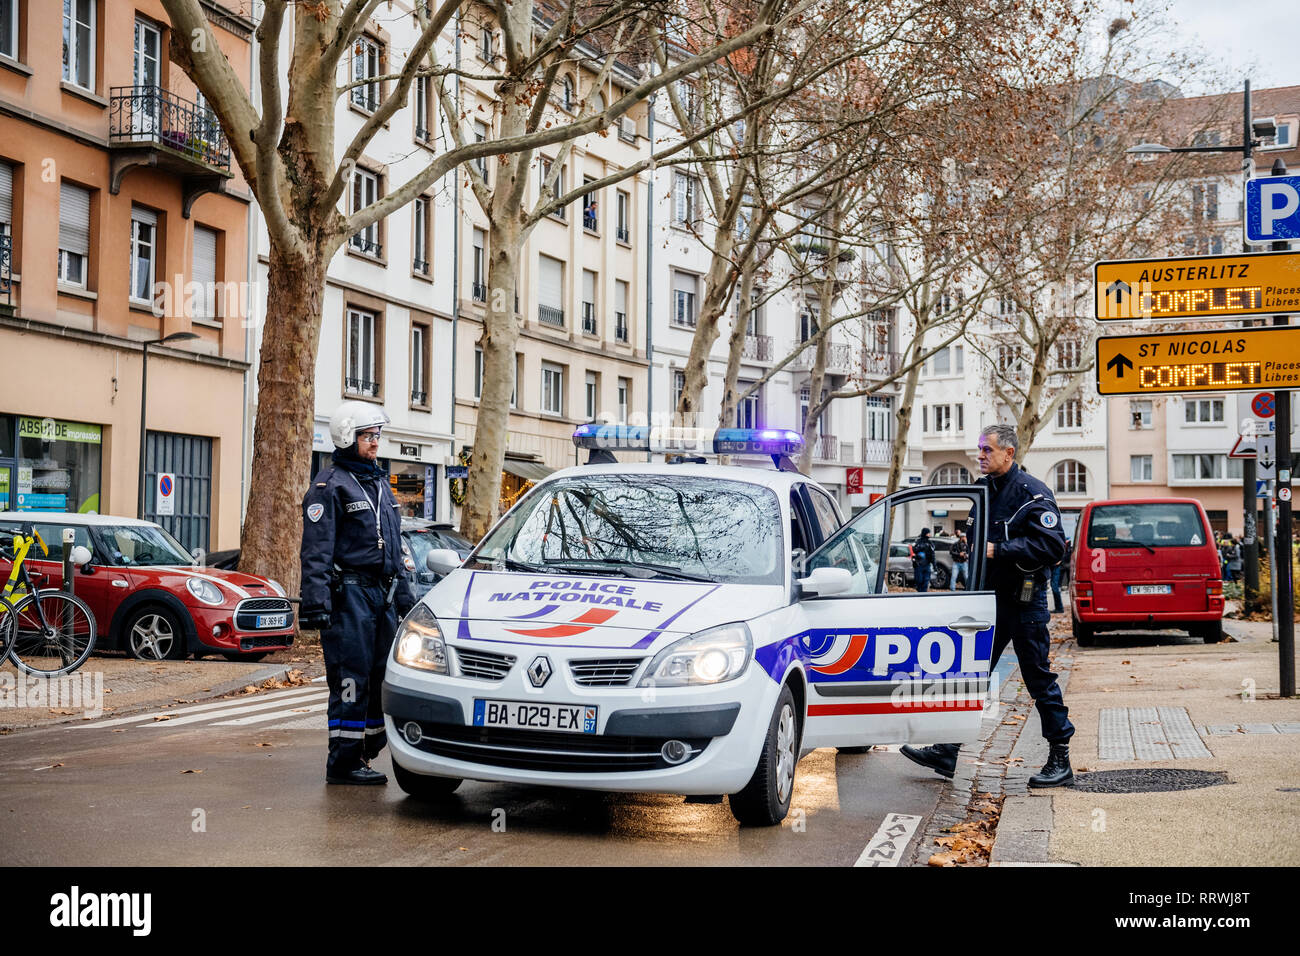 STRASBOURG, FRANCE - DEC 8, 2018: Police officer securing the zone in front of crowd marching in Central Strasbourg at the nationwide protest demonstration Marche Pour Le Climat Stock Photo